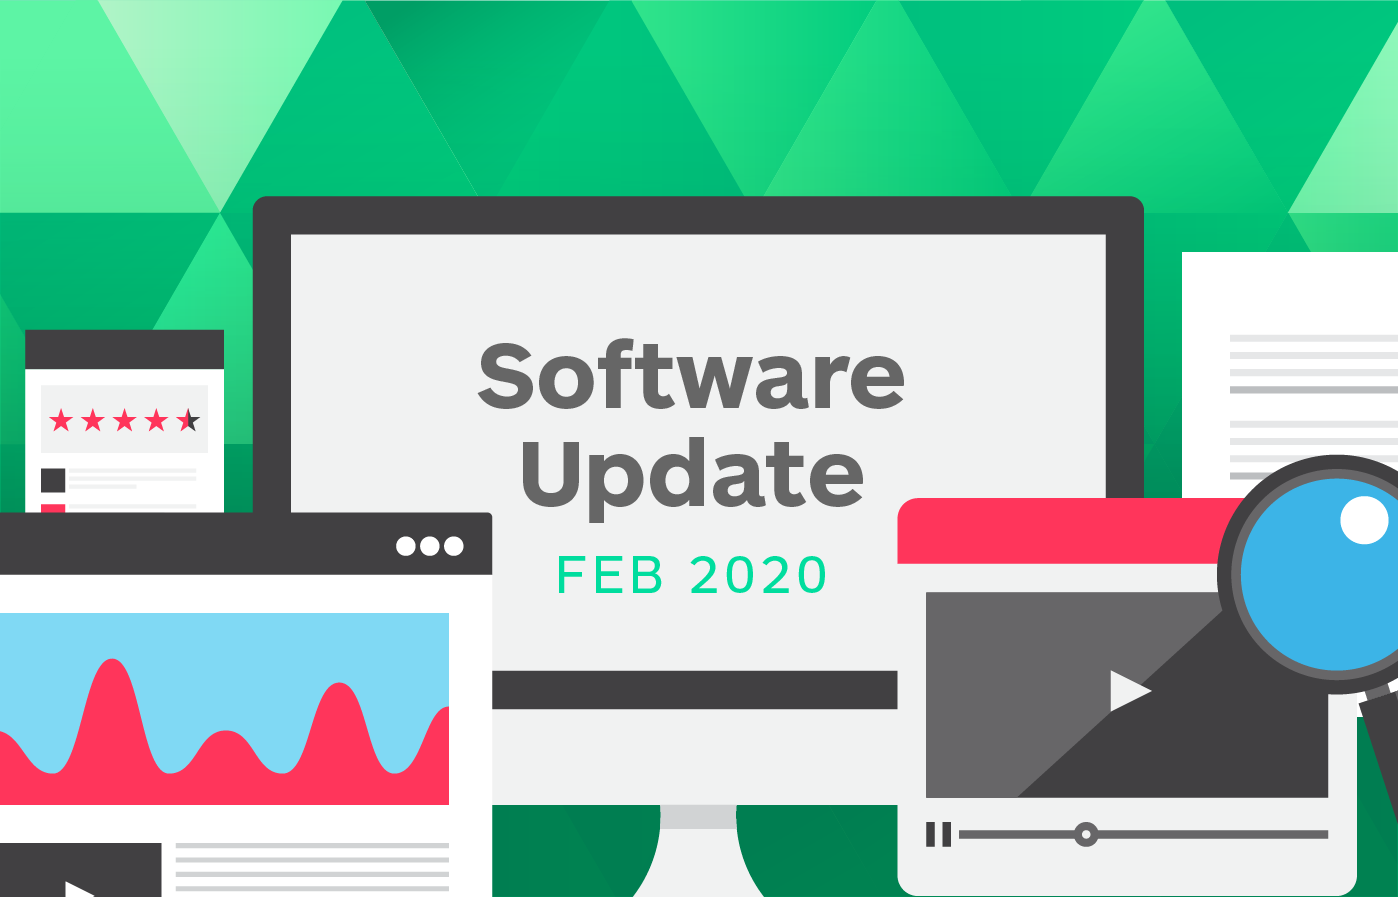 Software Update - February 2020